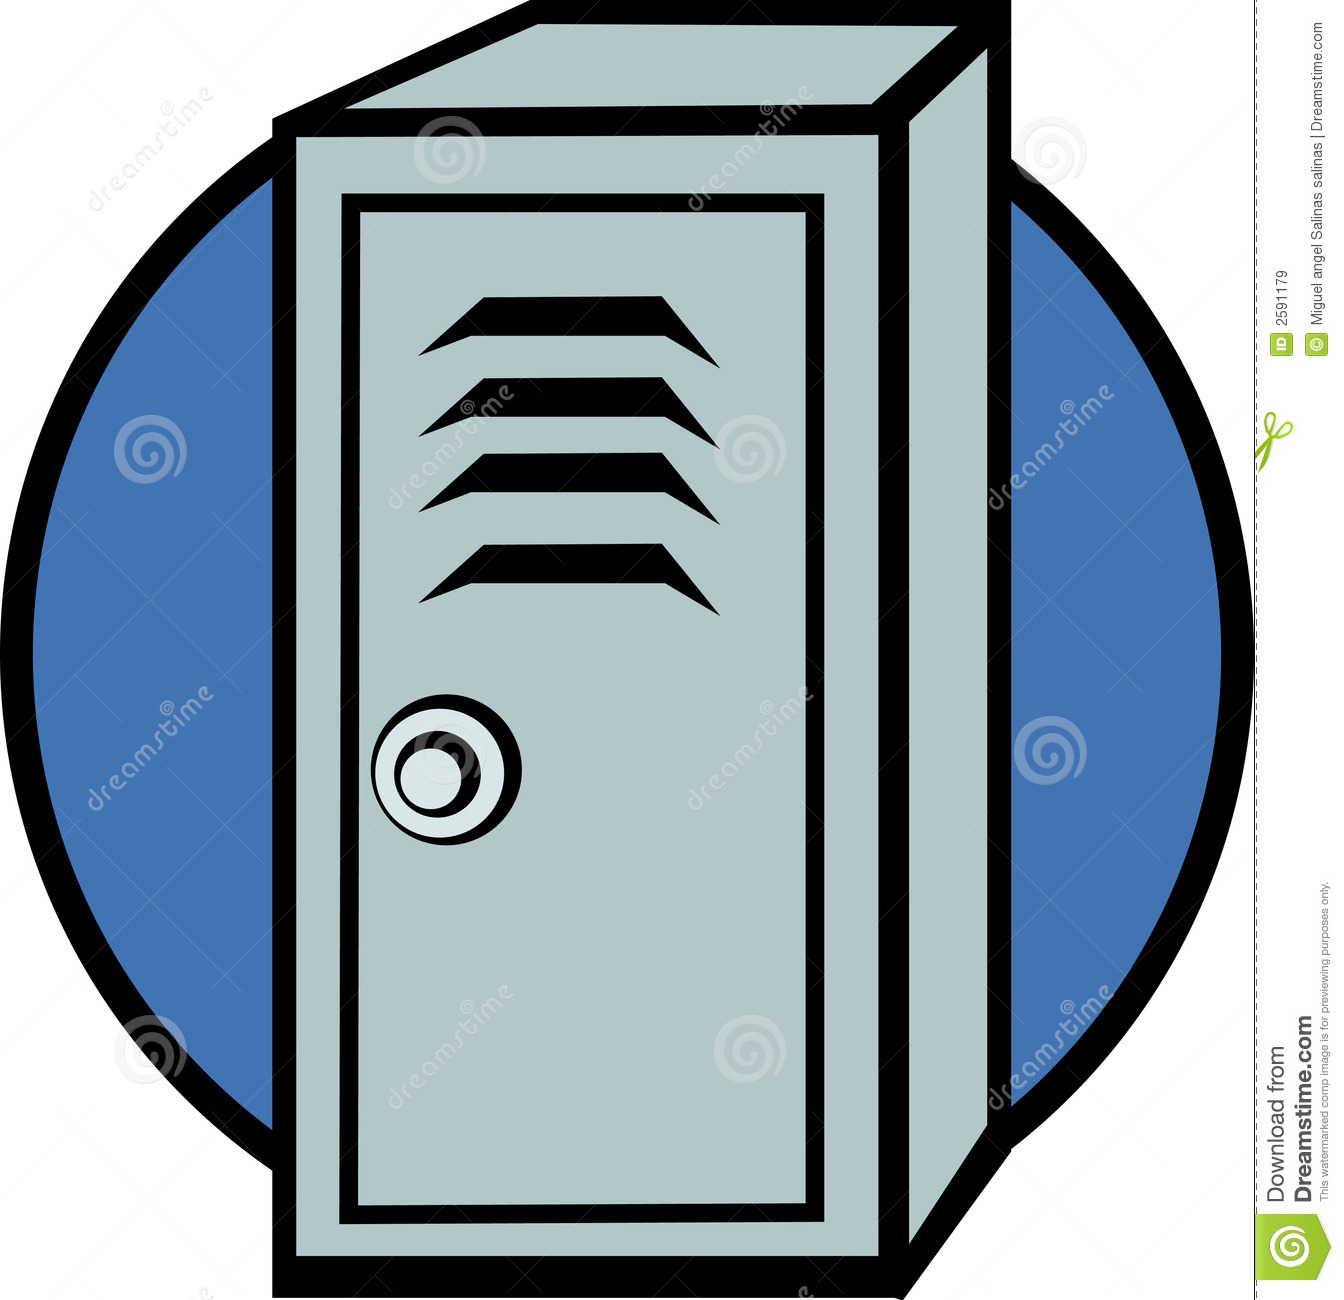 Locker Rental Clip Art.